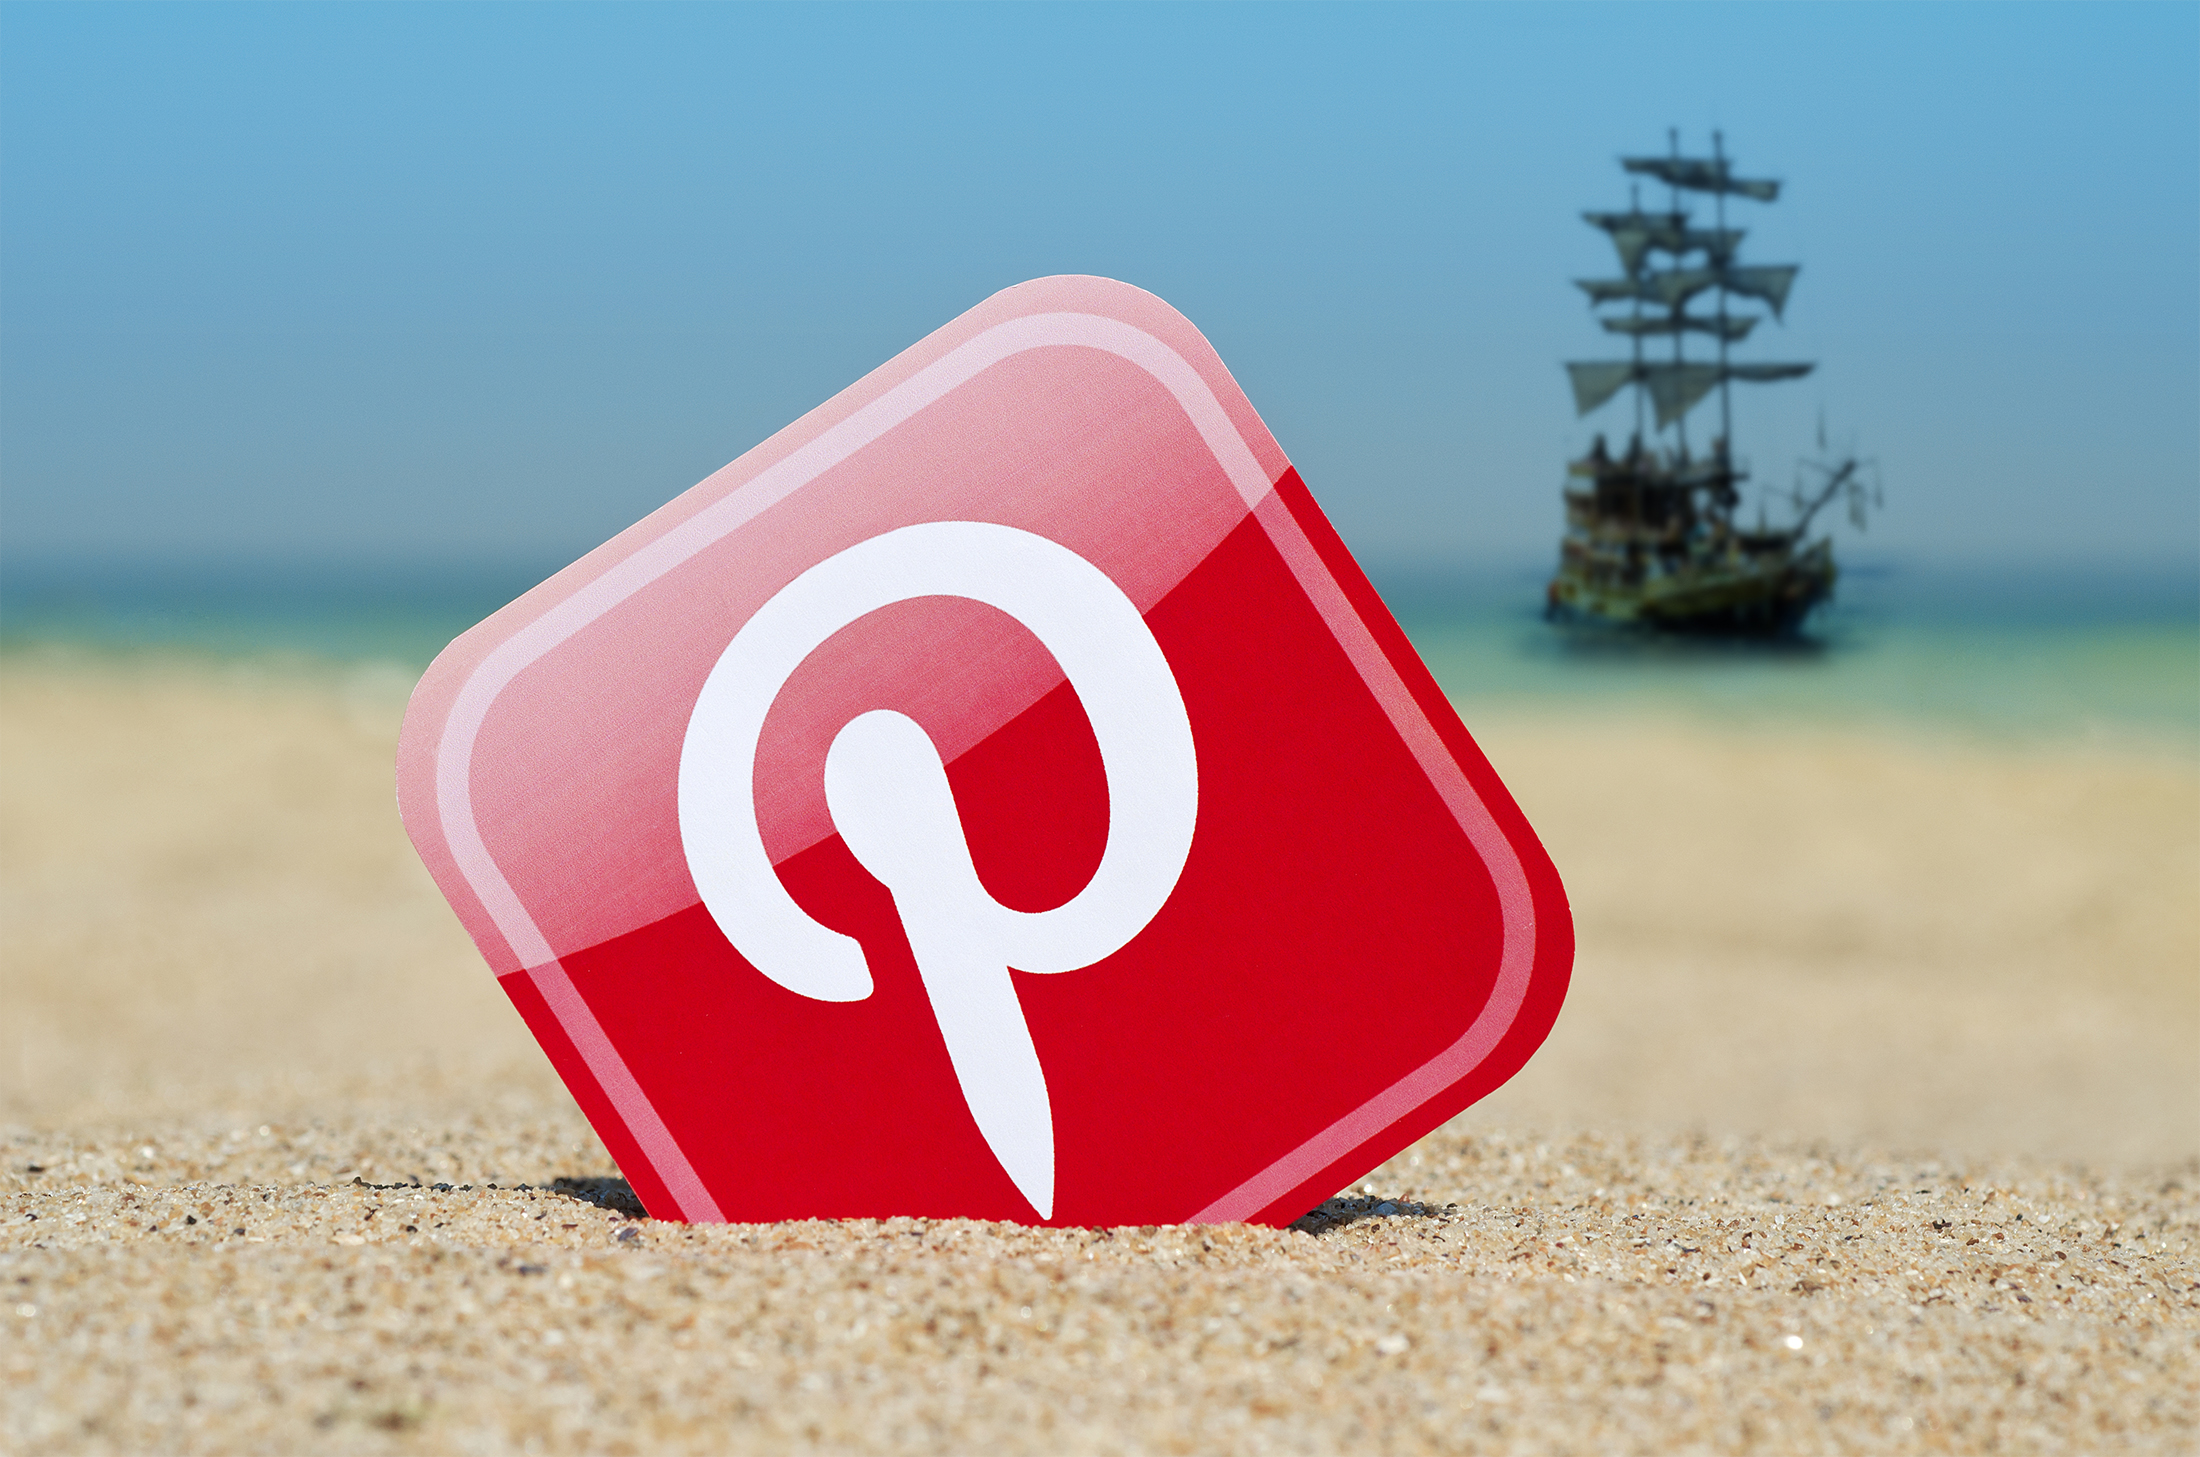 Pinterest (PINS) Stock Finds This Month Hard To Recover